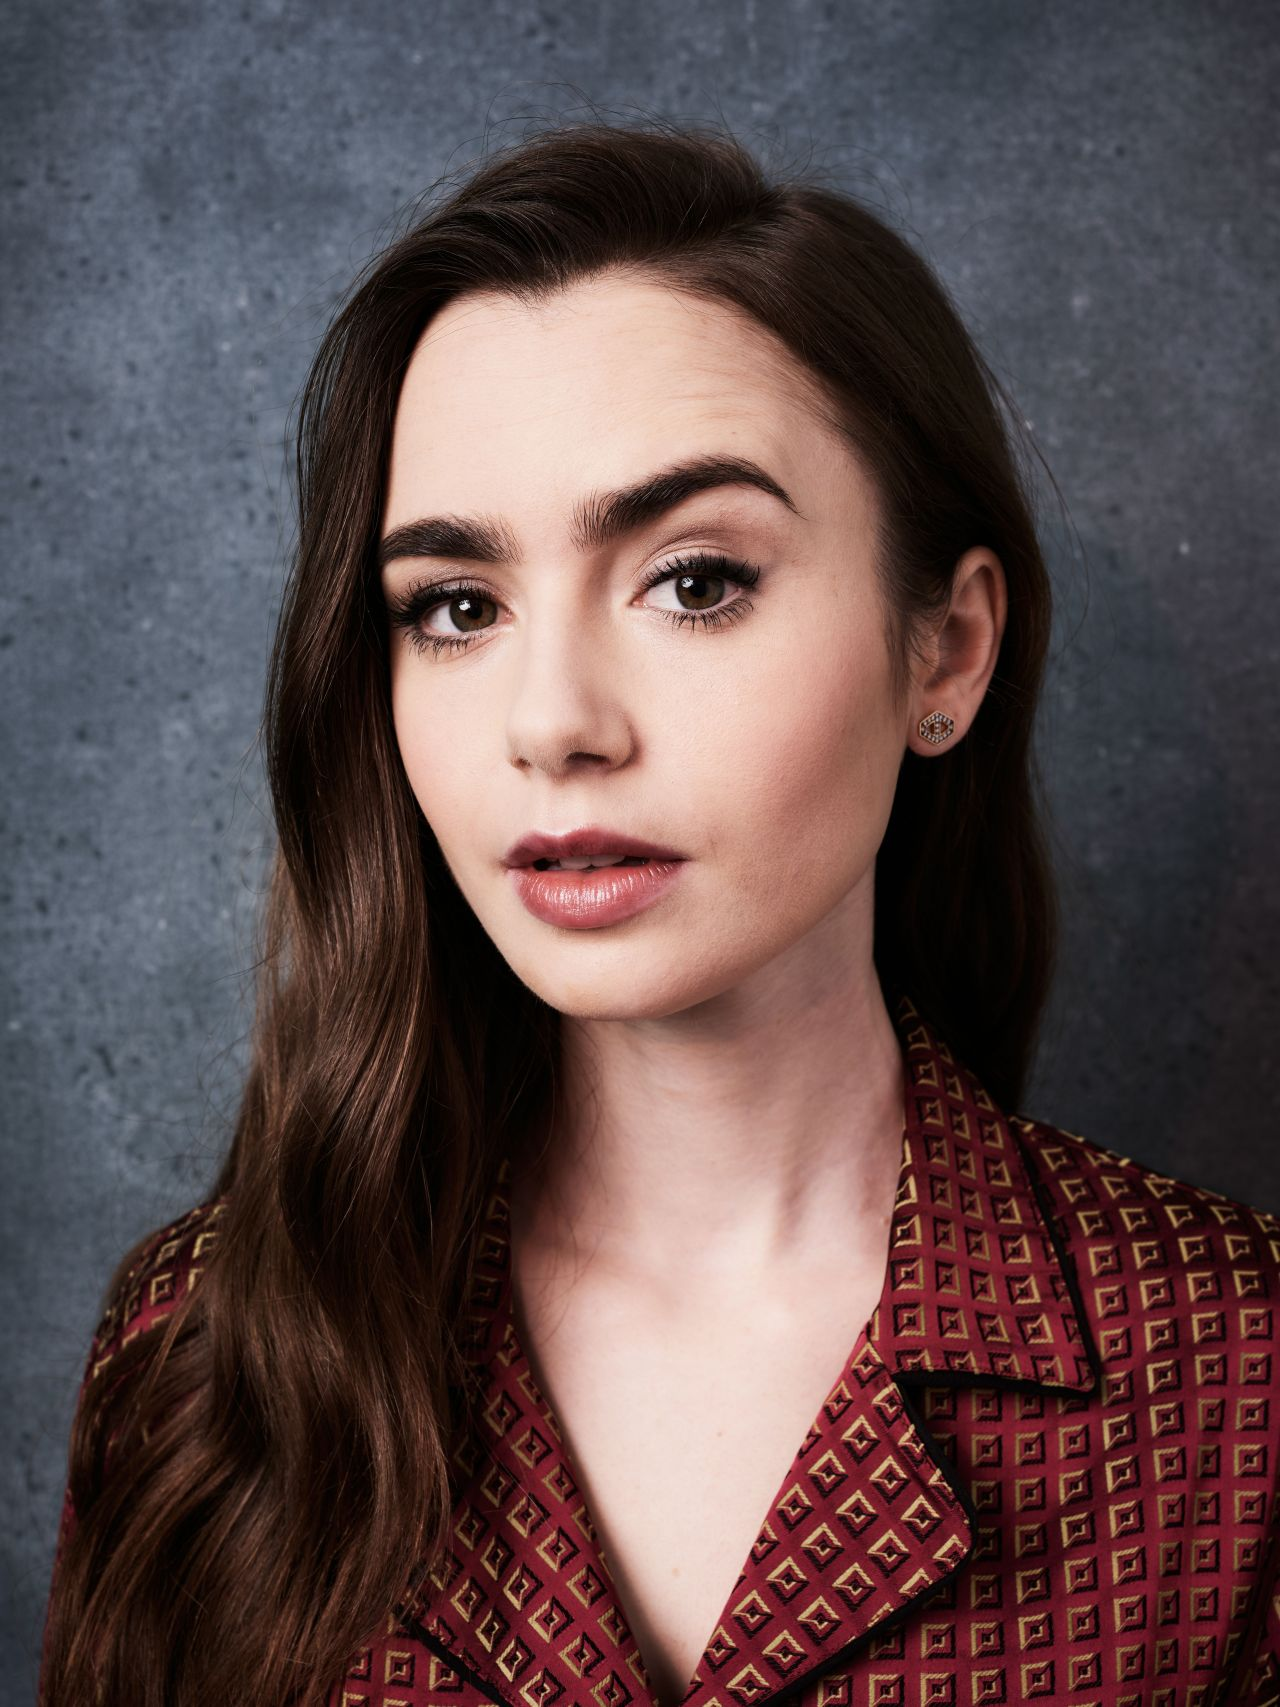 Lily Collins - Deadline Contenders Portraits April 2019